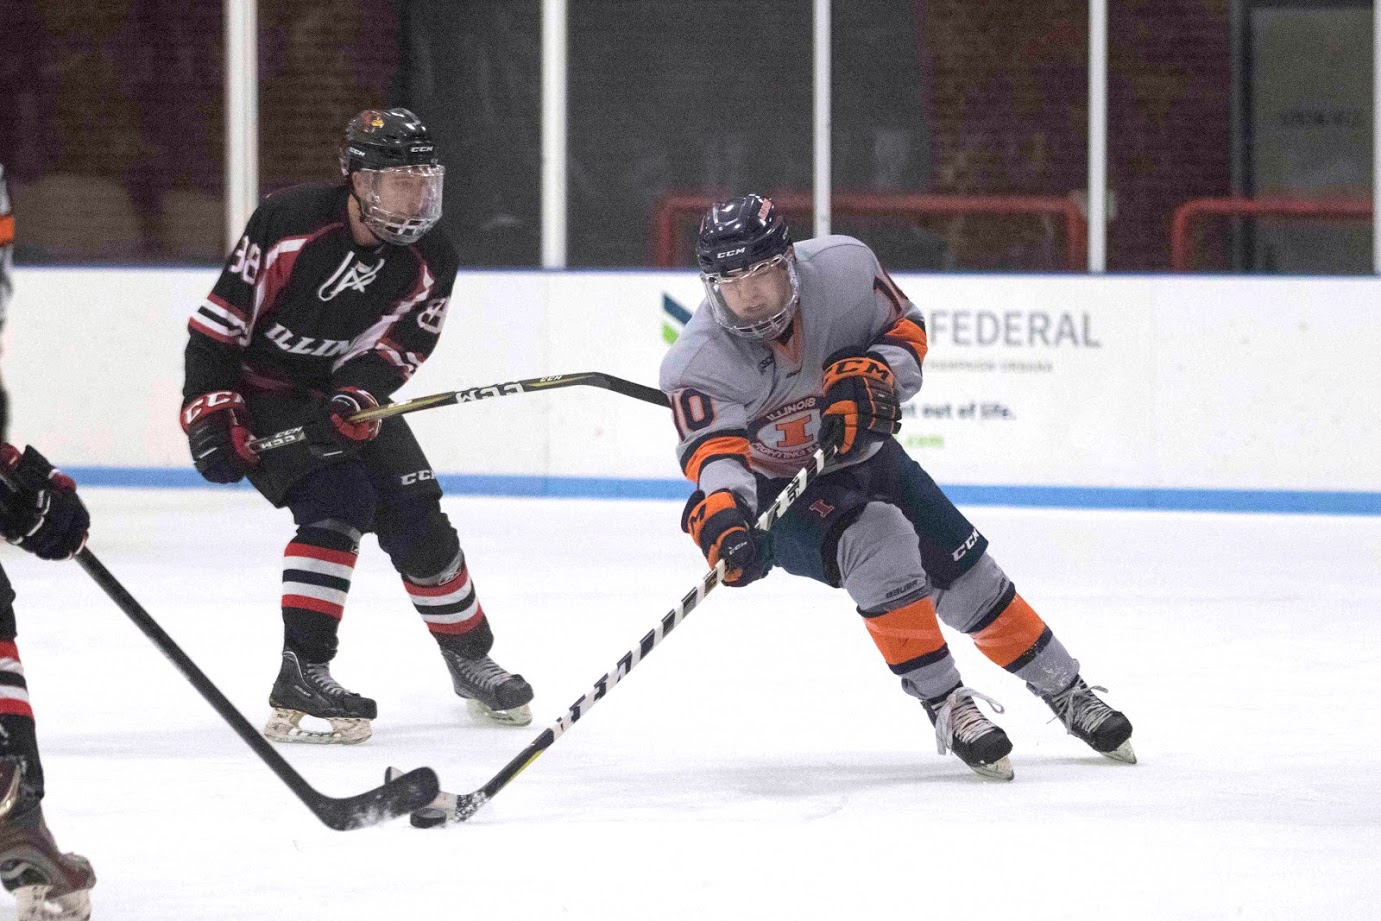 Drew Richter controls the puck during Illinois' game against llinois State. The game took place on Feb. 2, 2018.